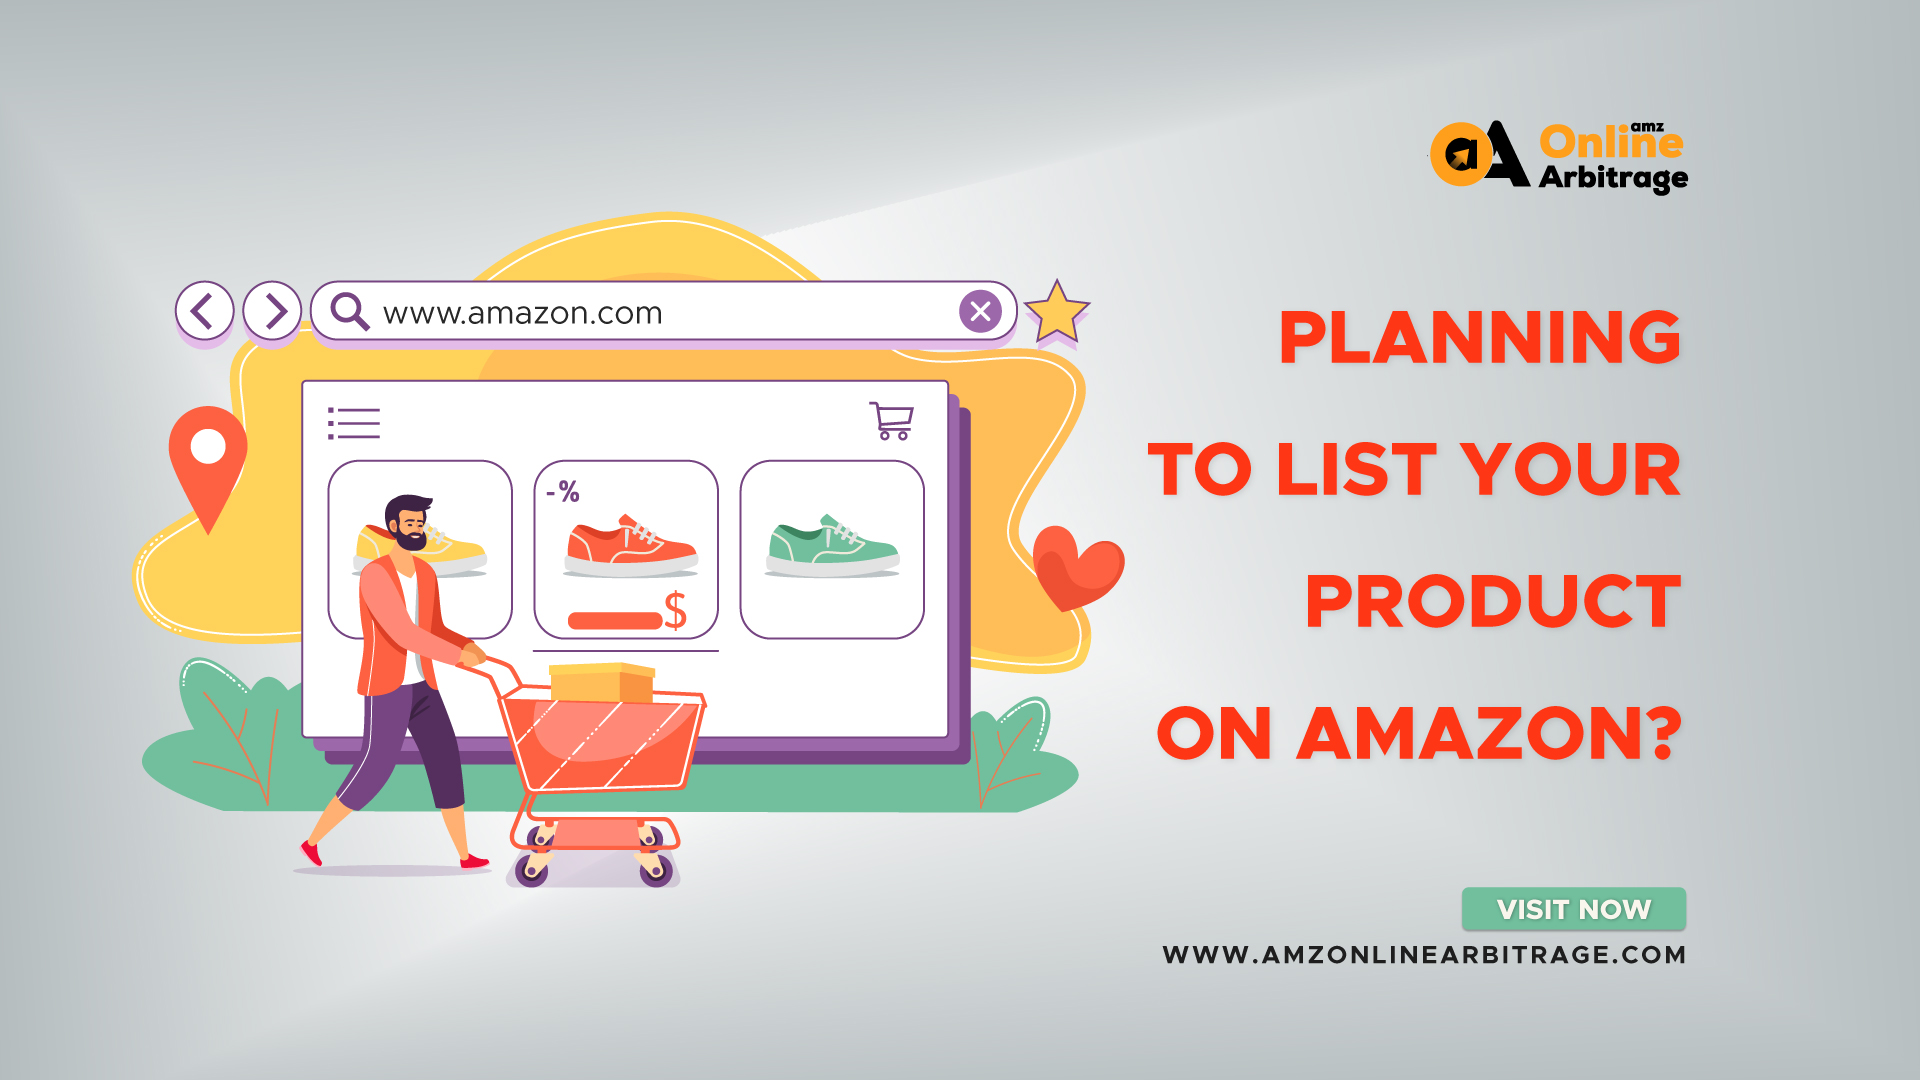 PLANNING TO LIST YOUR PRODUCT ON AMAZON?